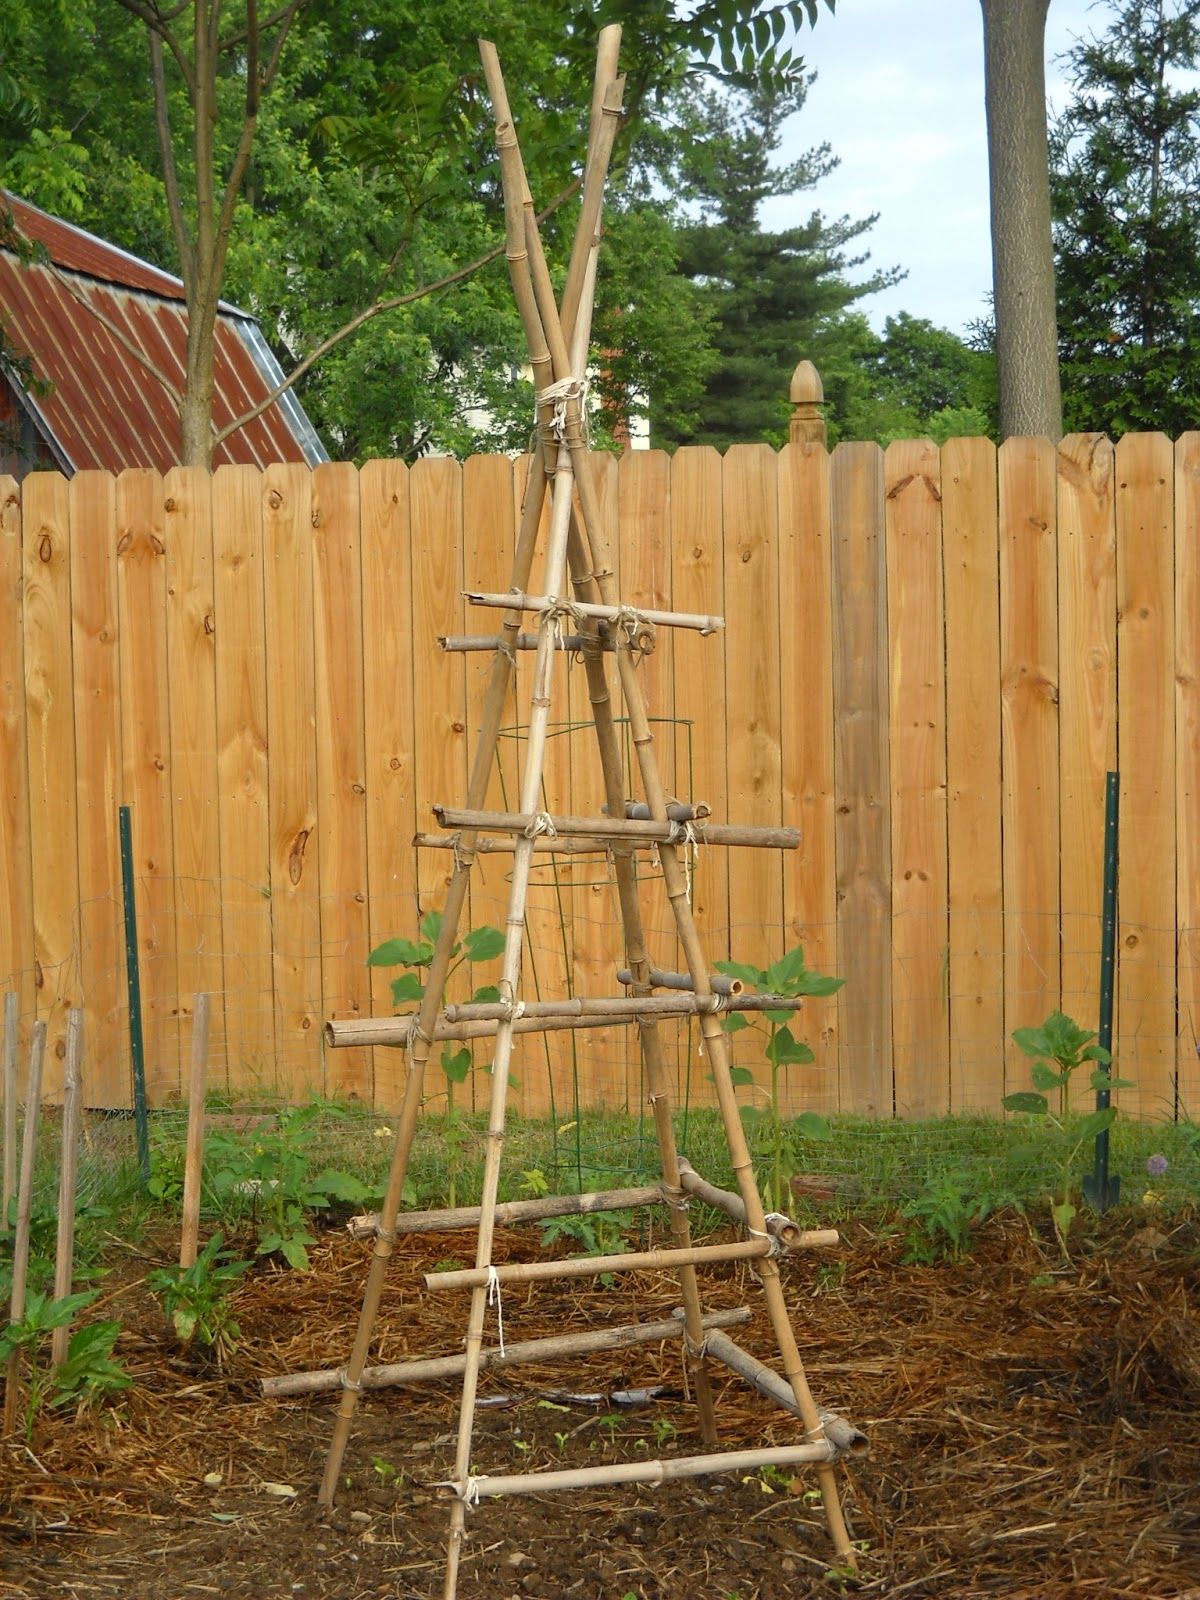 A diva 39 s garden building a teepee trellis for kids - Building trellises property ...